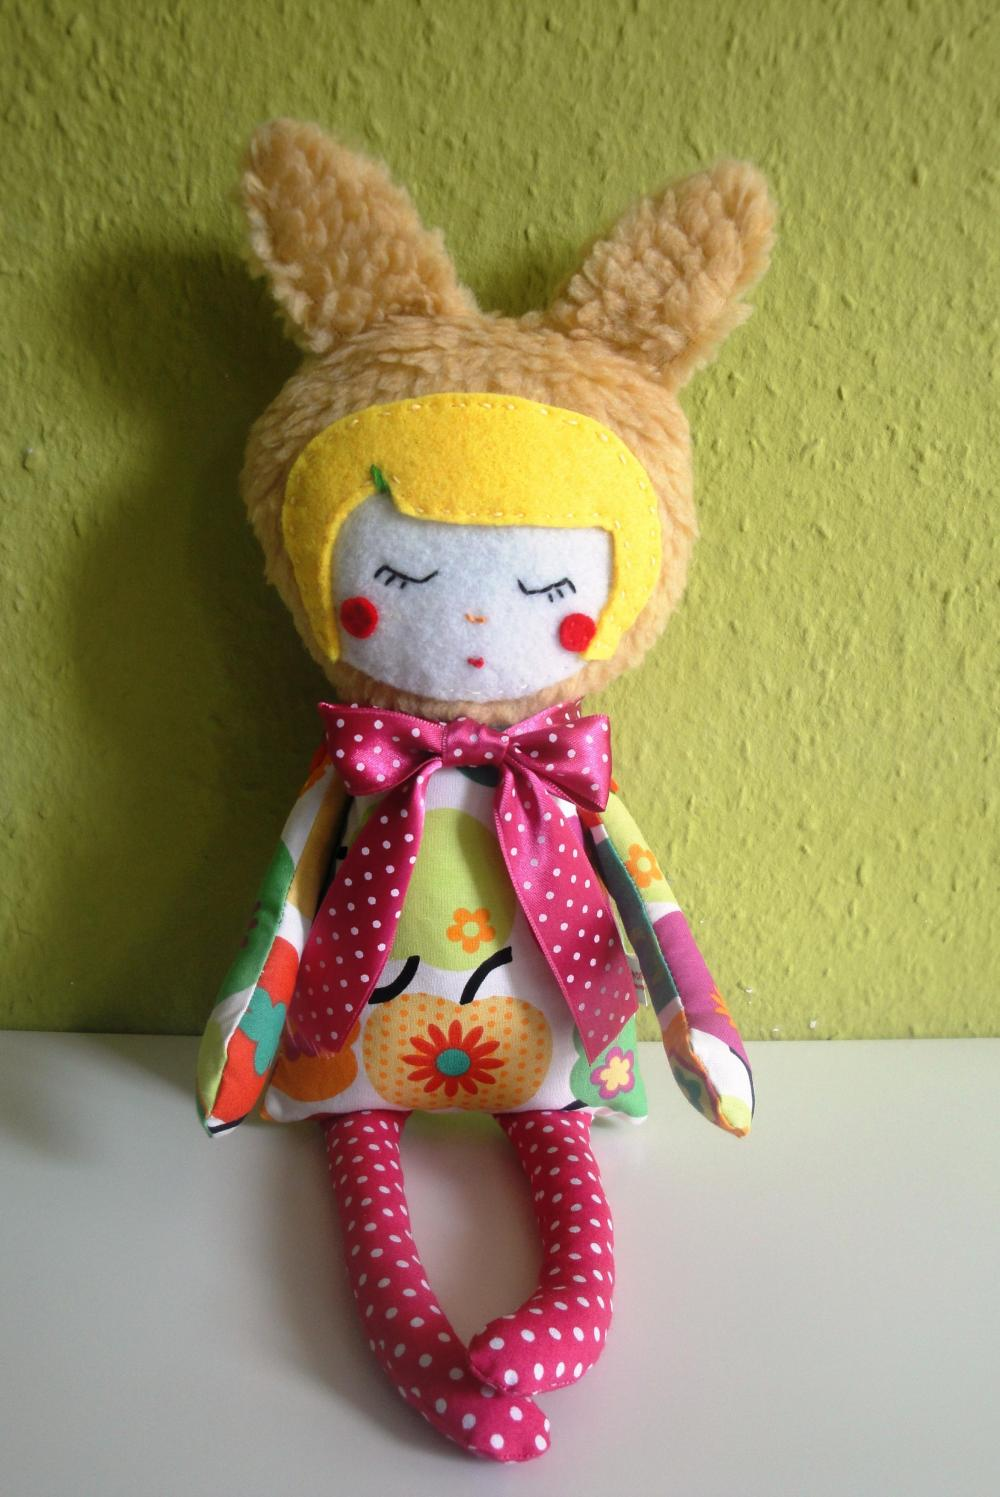 Miss Lapina the bunny girl in a apple dress